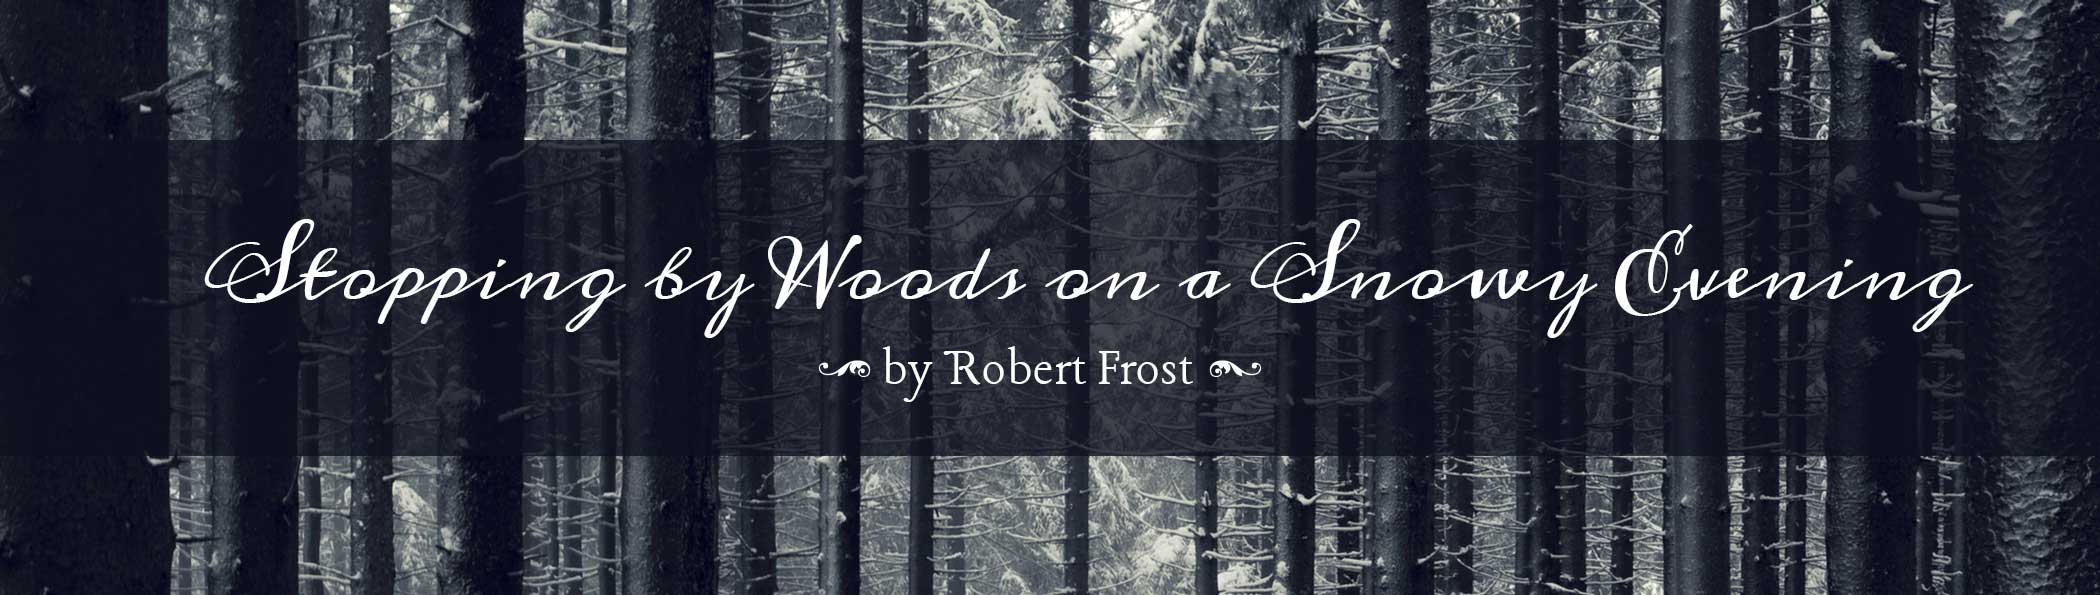 snowy-woods_banner